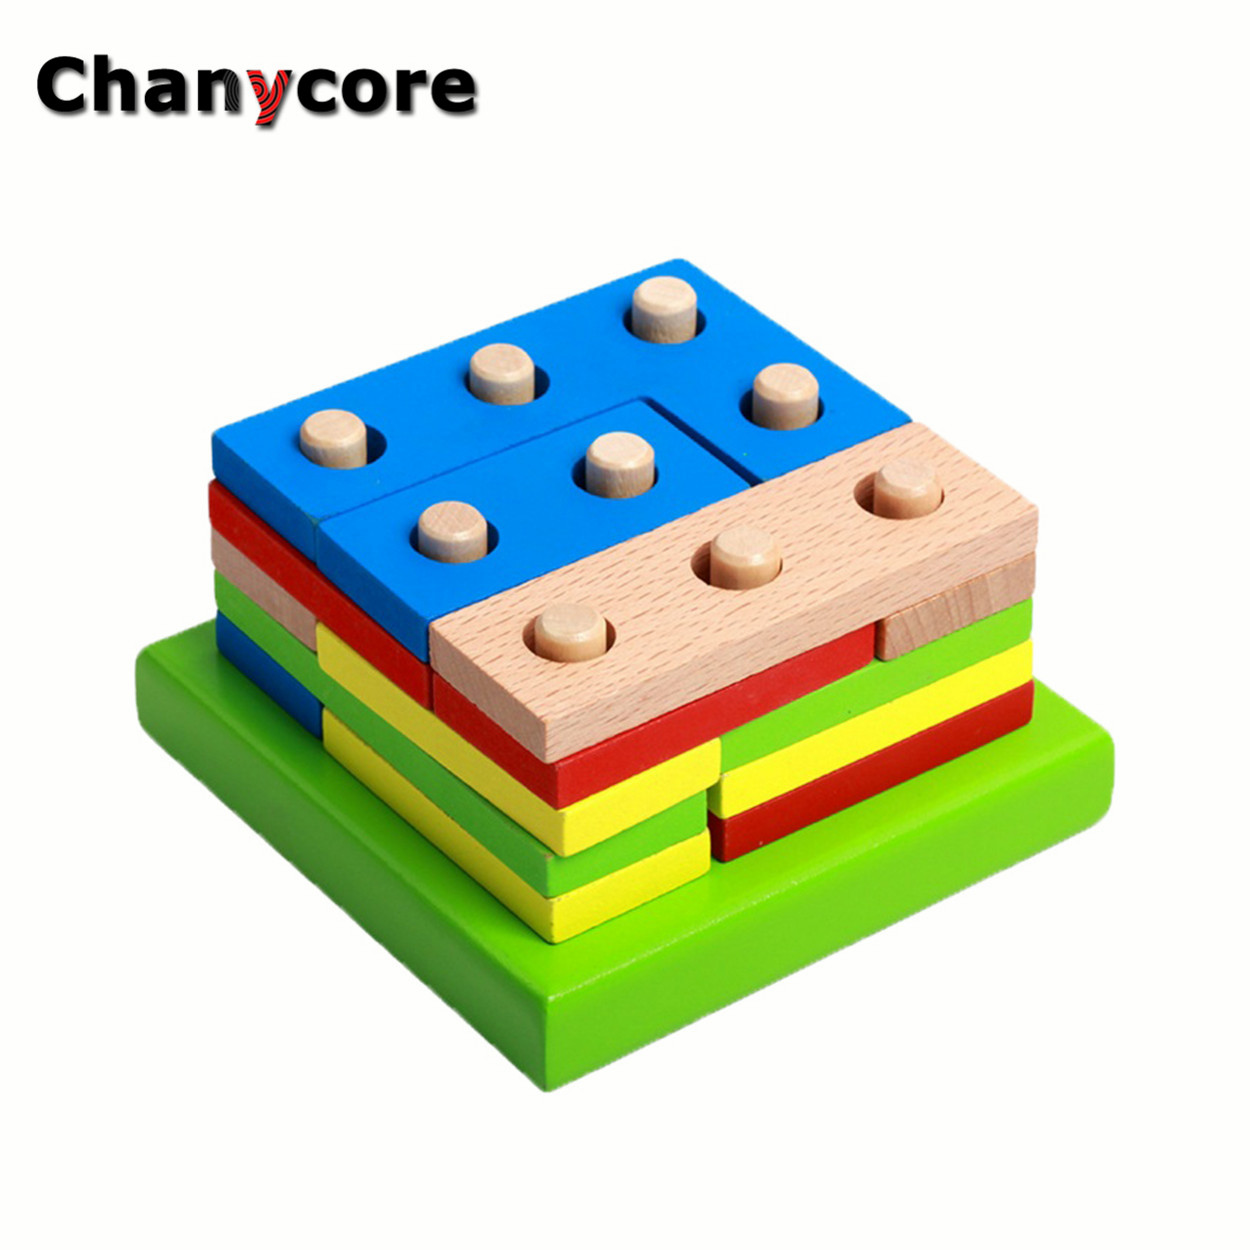 Baby Learning Educational Wooden Toys Geometric Shape Blocks Column Board Sorting Matching ddm Montessori Kids Gifts 4121